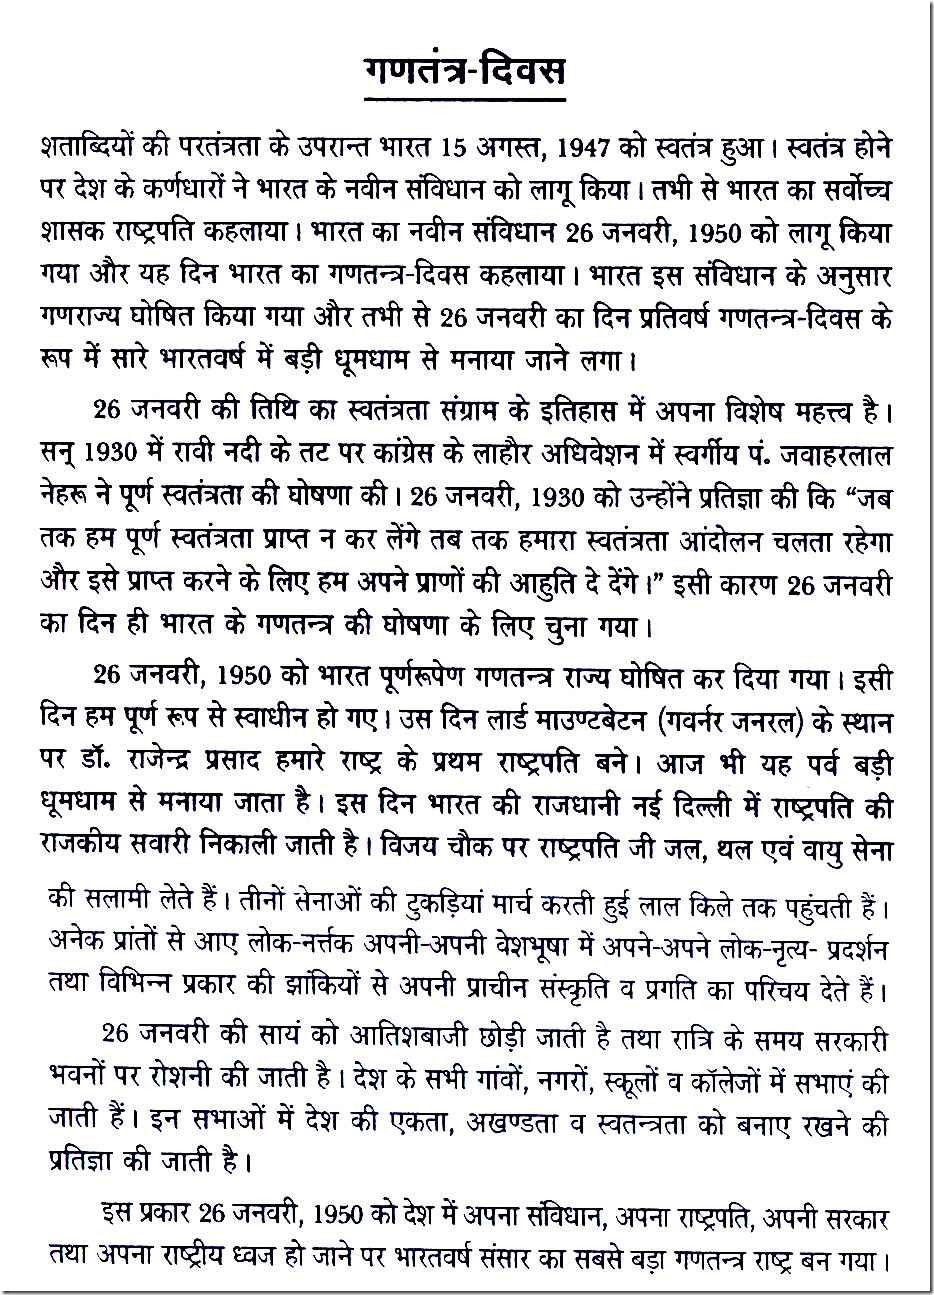 mahatma gandhi essay in hindi diwali essay short essay about english essay speech writing a basic - Basic Essay Examples